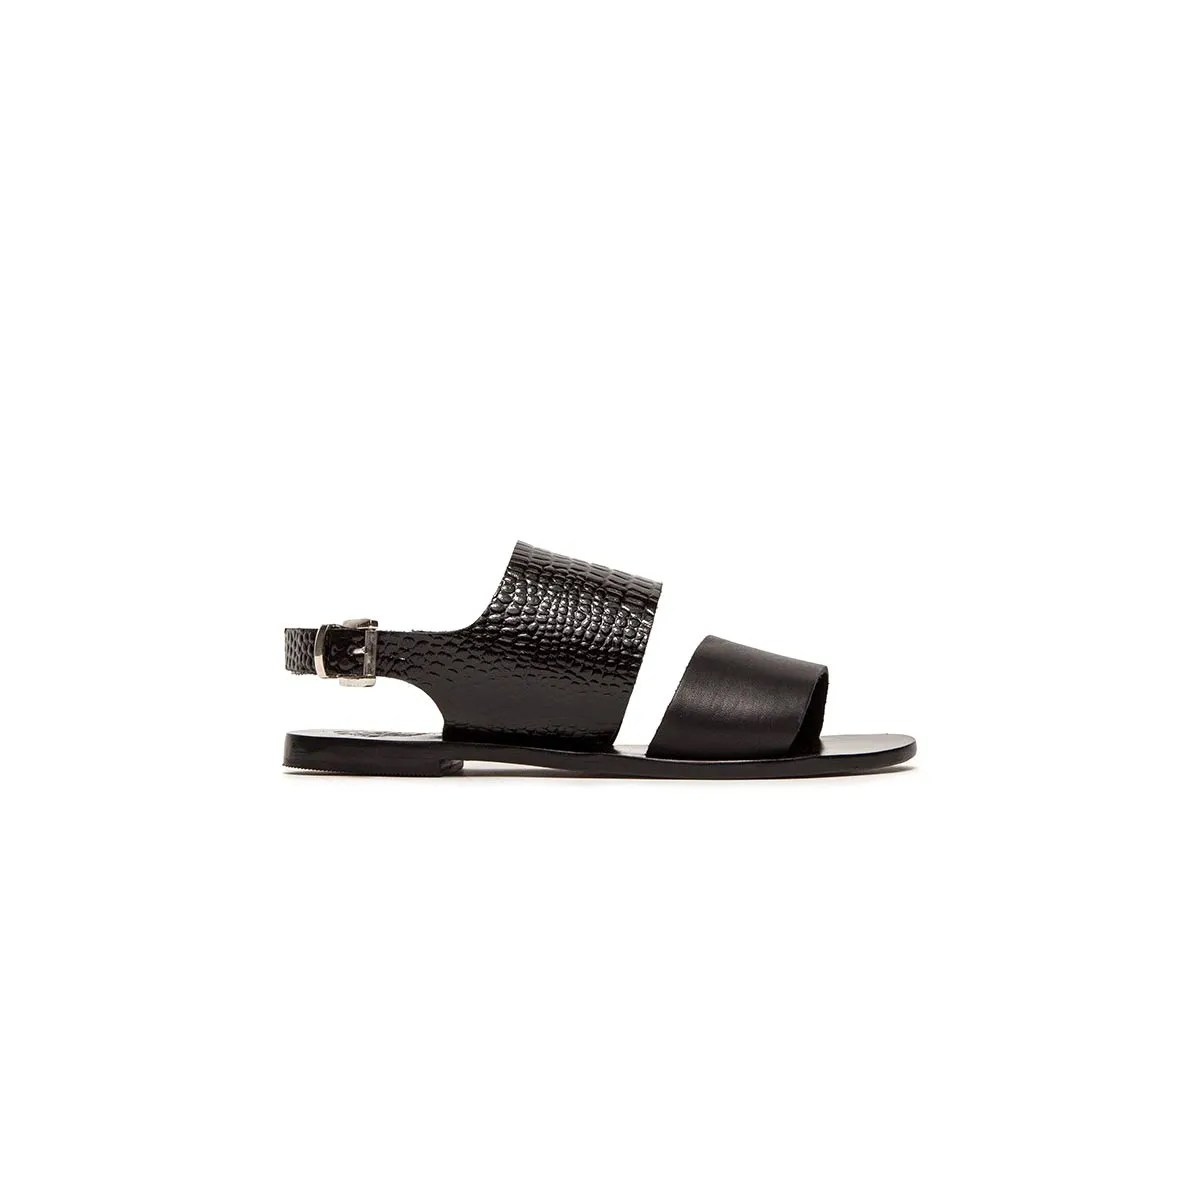 The Substantial Sandal